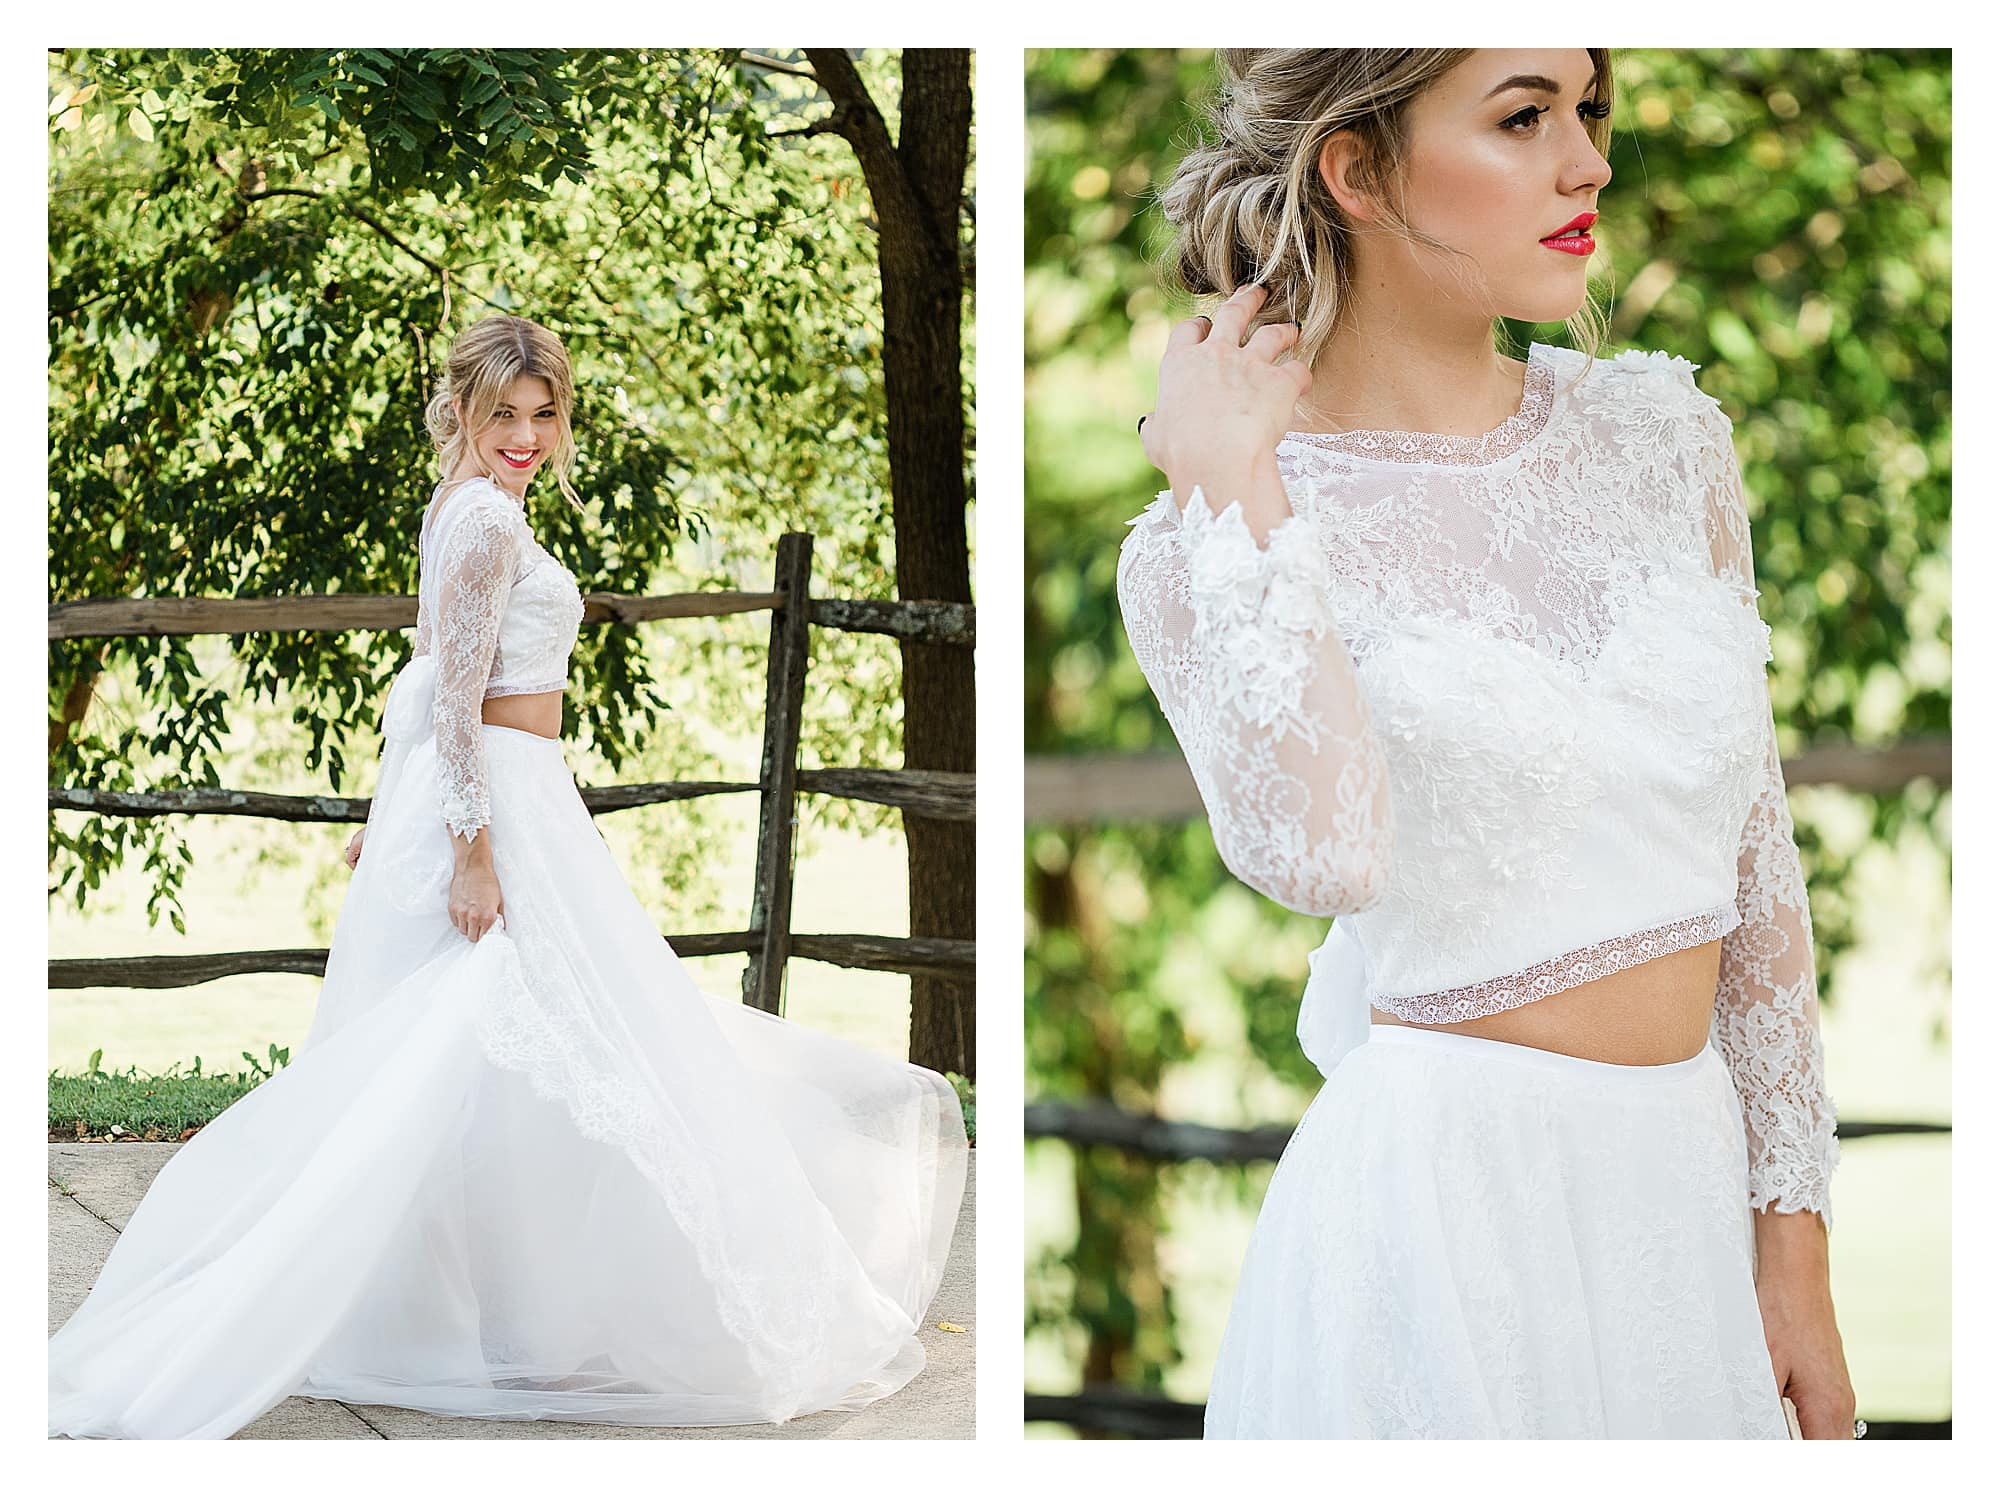 Bride wearing two piece white lace wedding dress smiling outside under trees